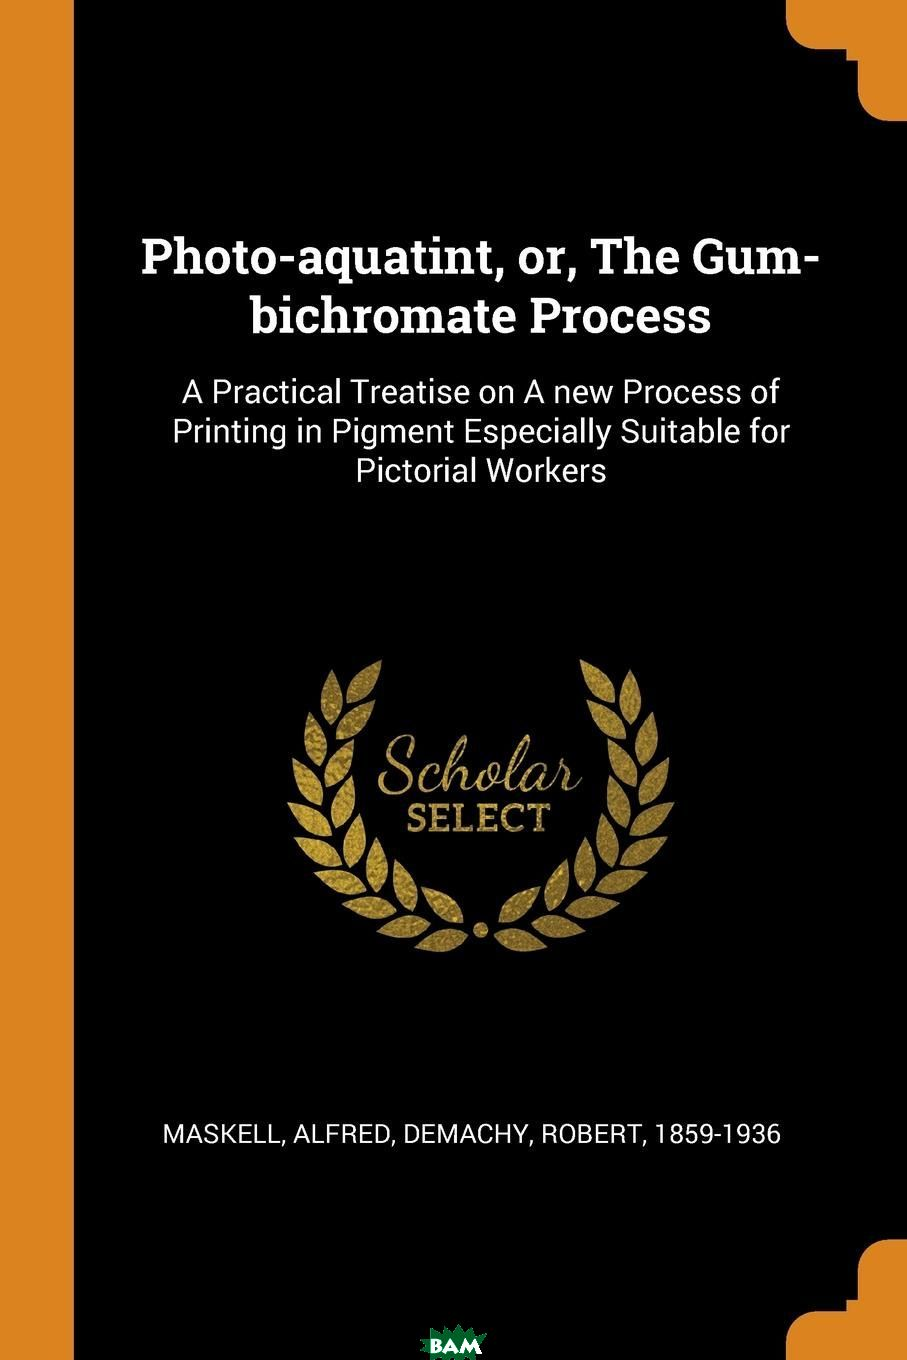 Photo-aquatint, or, The Gum-bichromate Process. A Practical Treatise on A new Process of Printing in Pigment Especially Suitable for Pictorial Workers